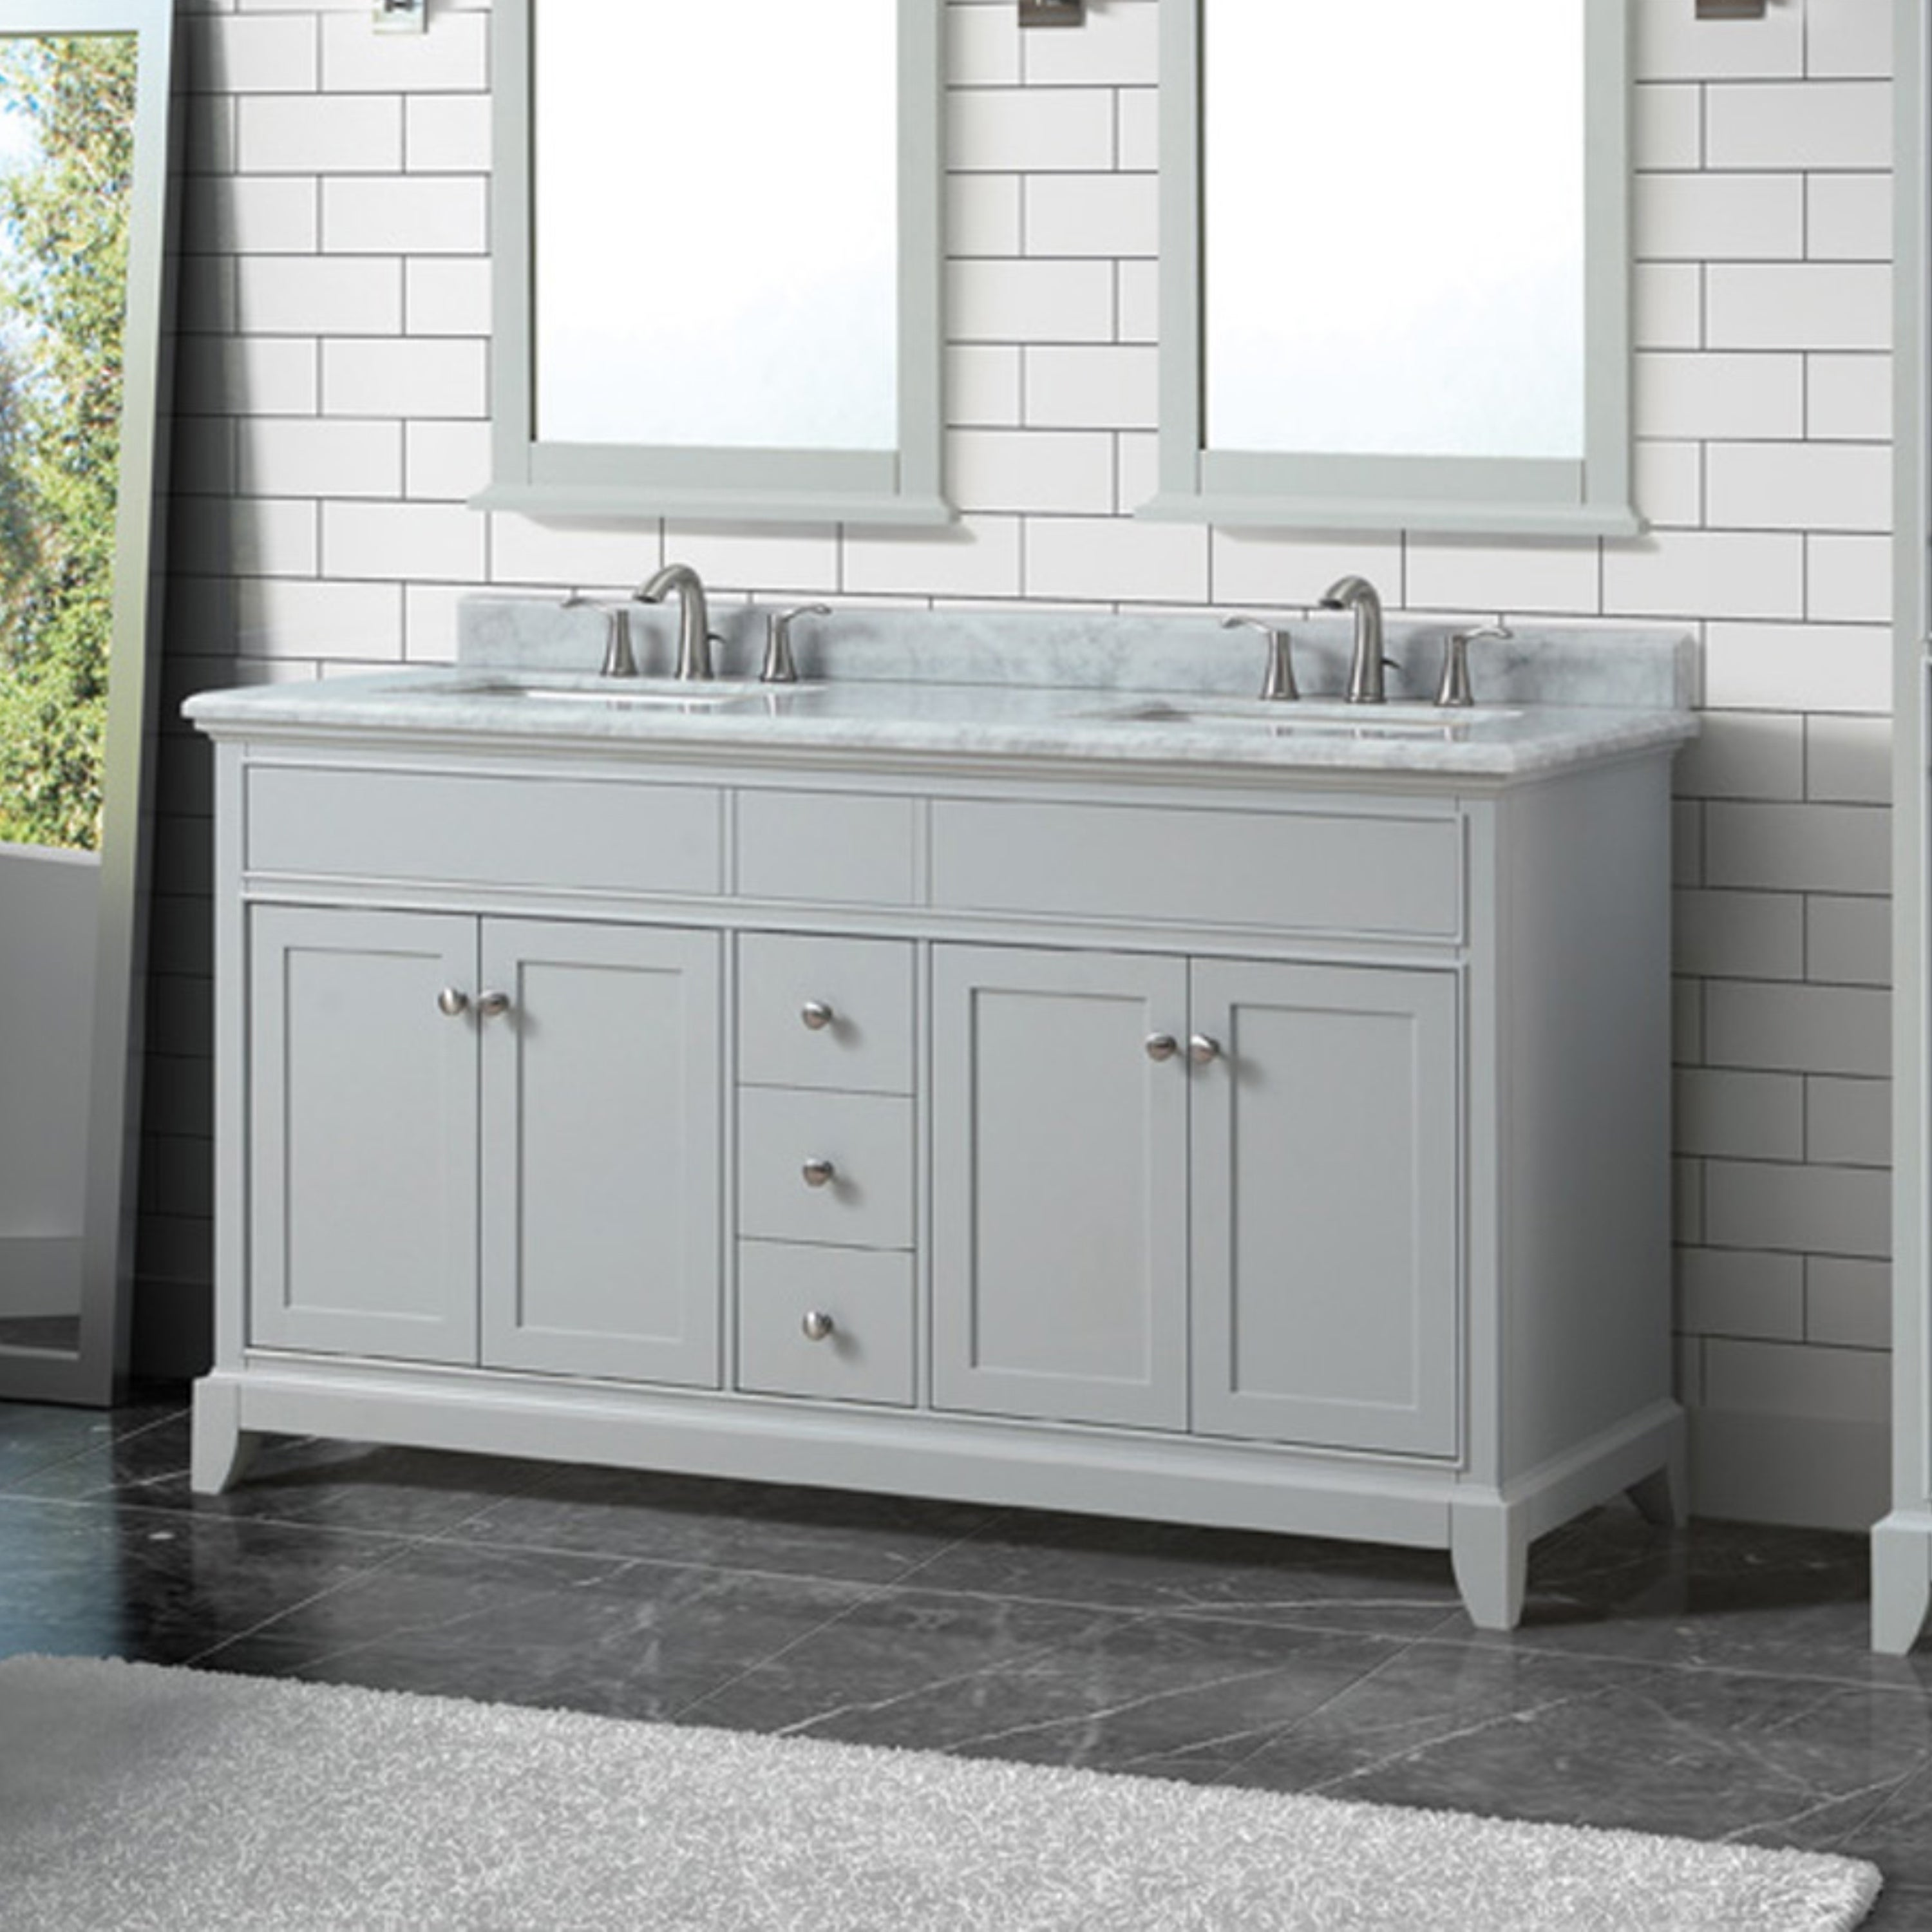 Azzuri Aurora 61 In Double Sink Vanity In Light Gray Finish With Carrara White Marble Top Overstock 15050757